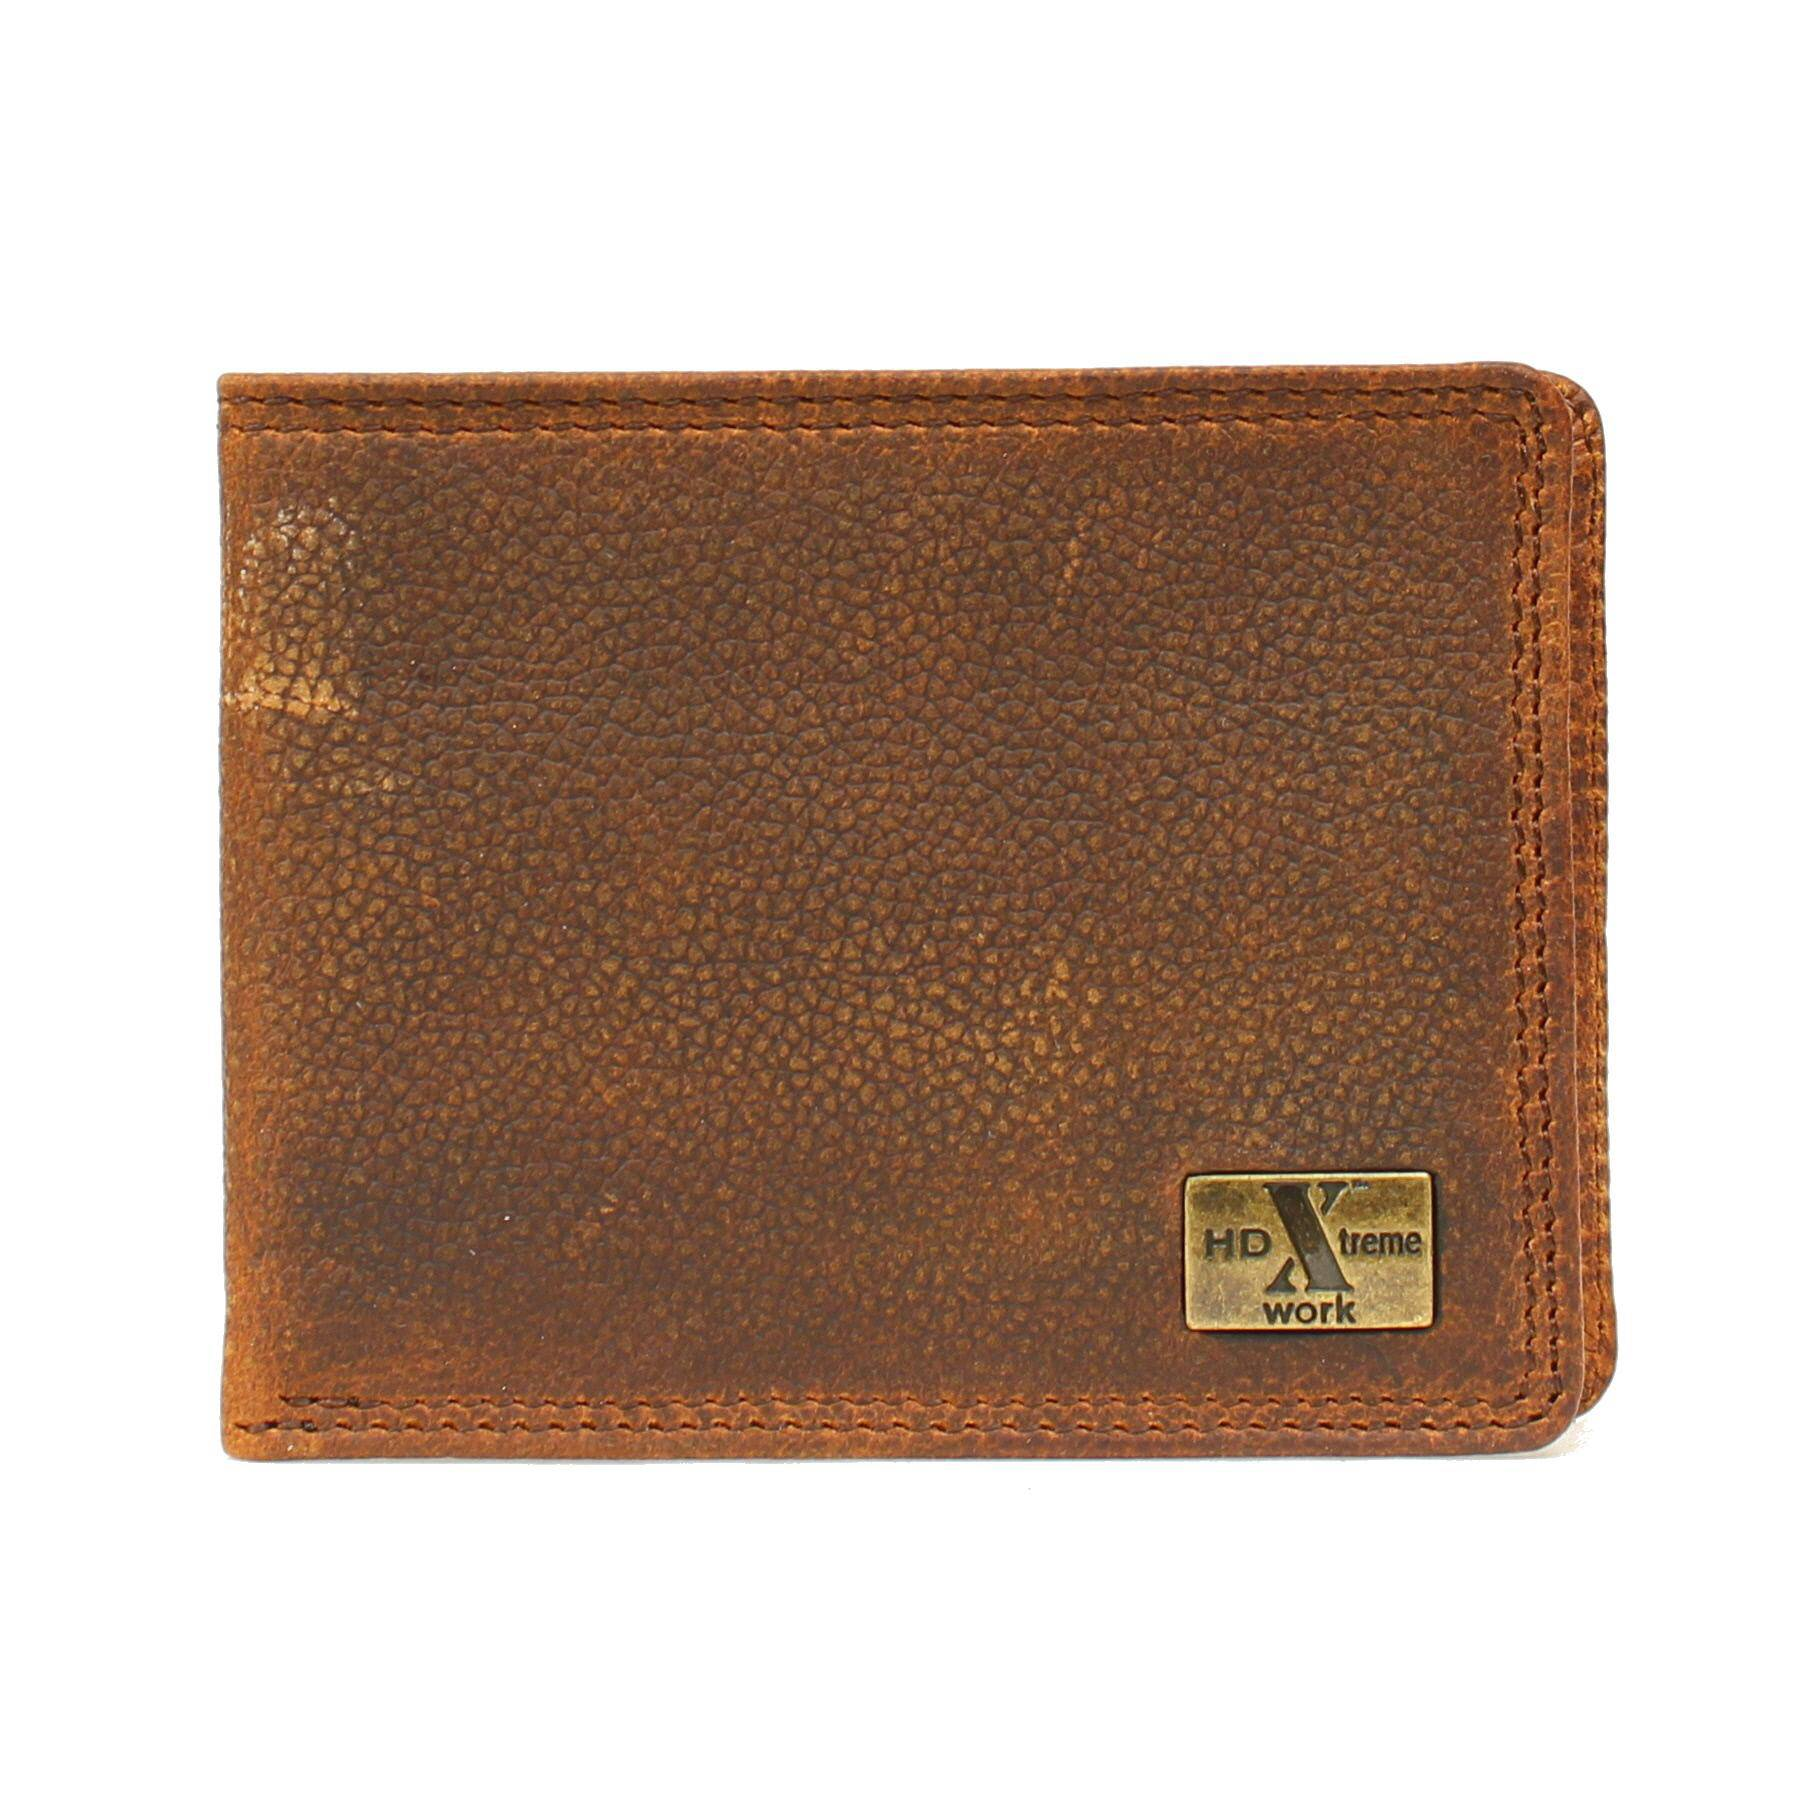 Nocona HDX Removable Passcase Work Wallet